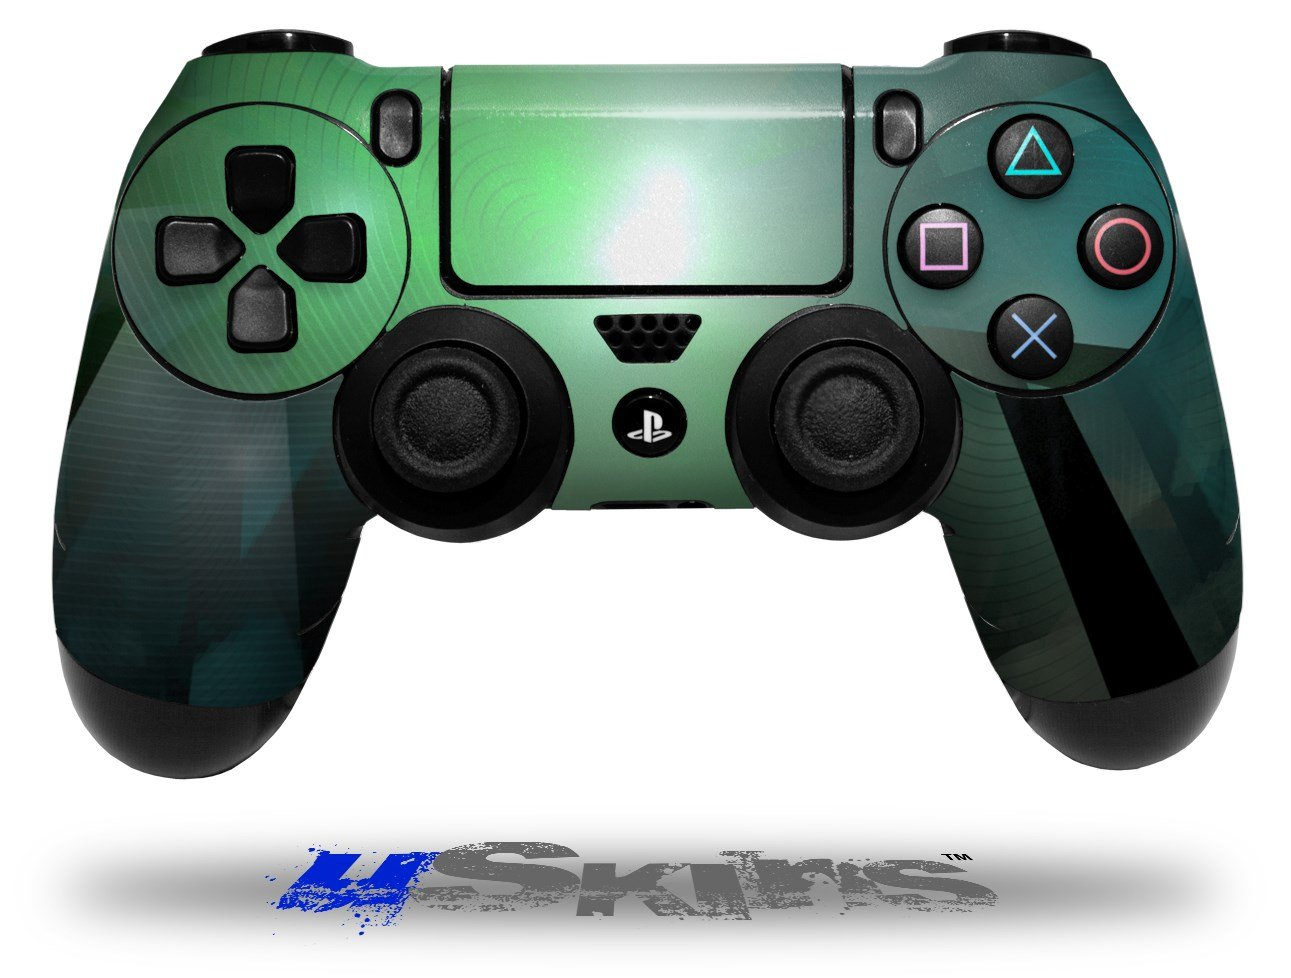 Наклейки для аксессуаров PlayStation 4 Sonic Boom - Decal Style Wrap Skin fits Sony PS4 Dualshock 4 Controller - CONTROLLER NOT INCLUDED